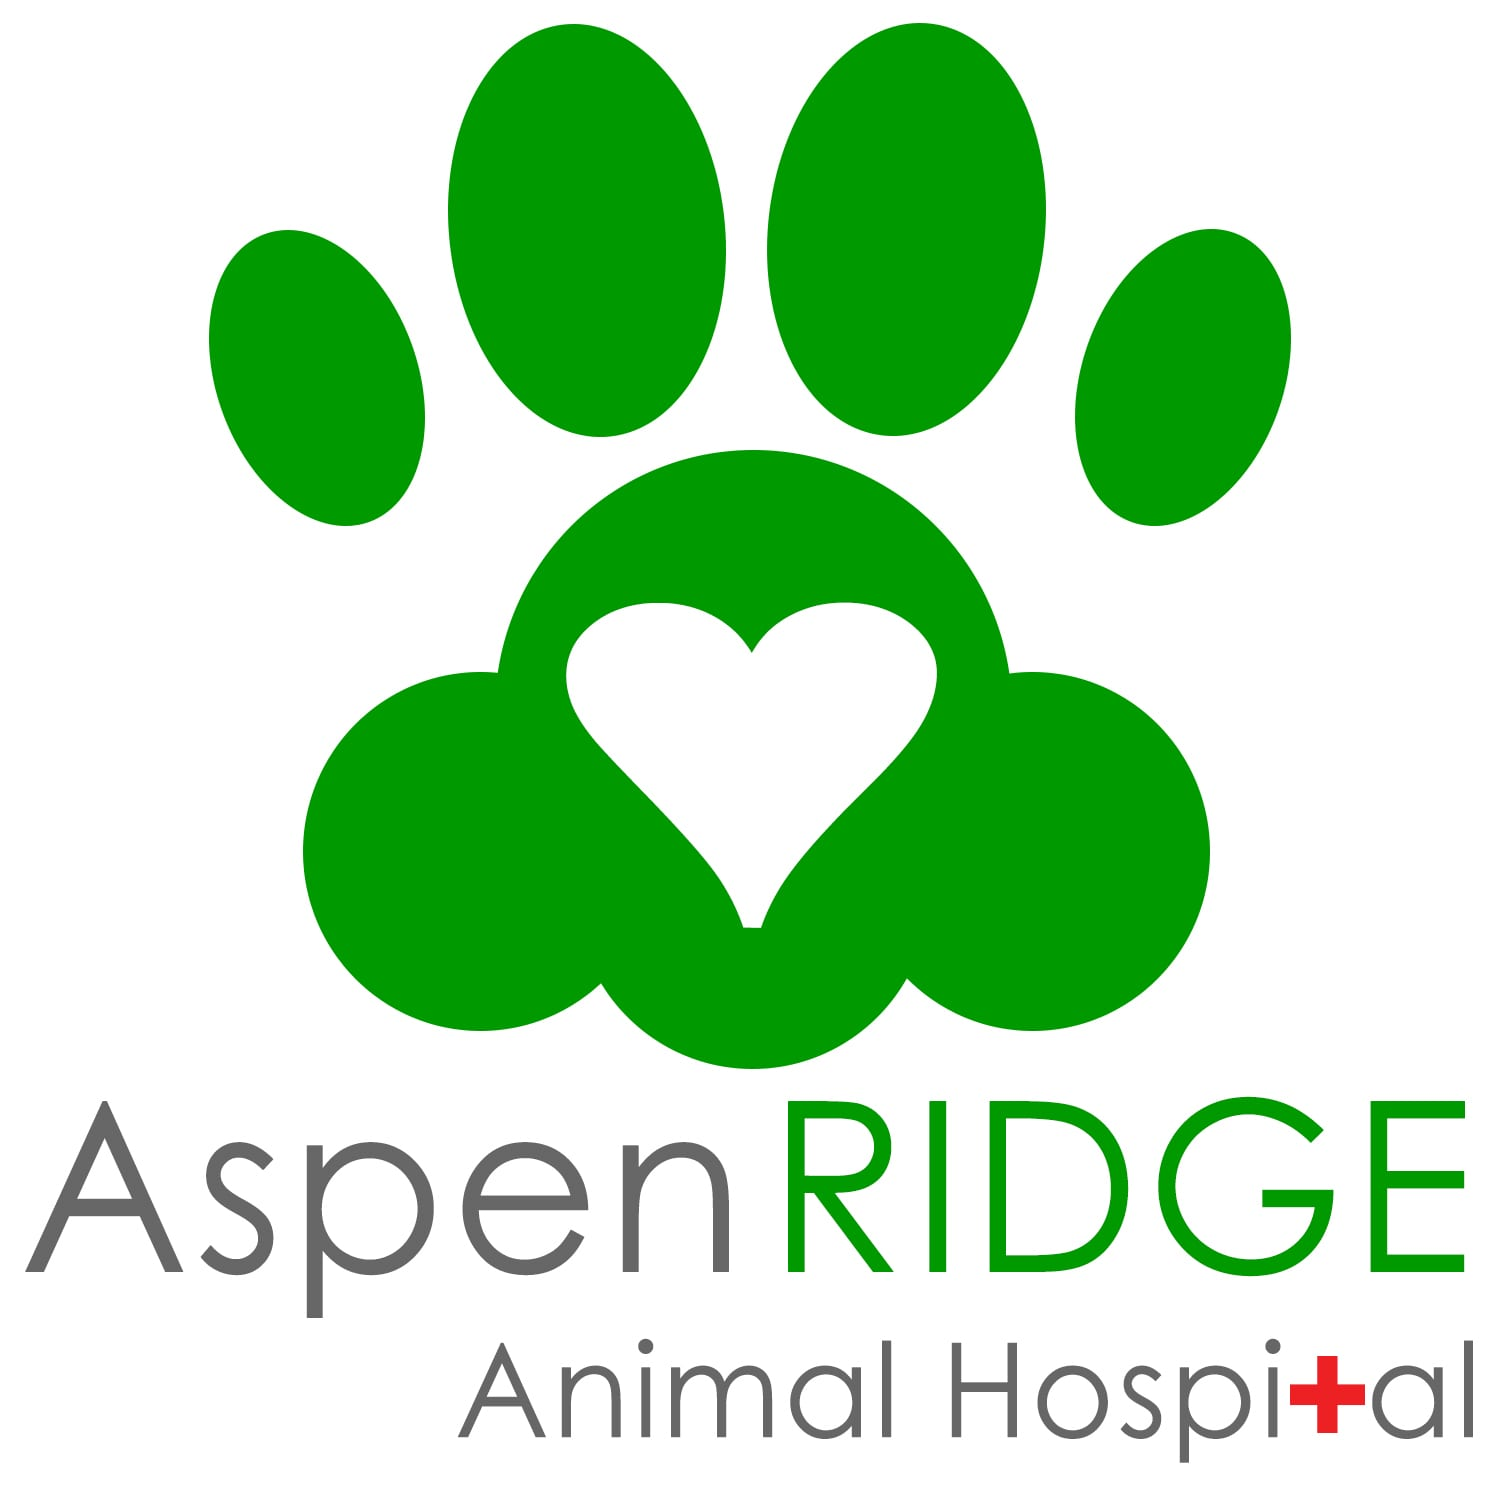 Aspen Ridge Animal Hospital square logo (image)